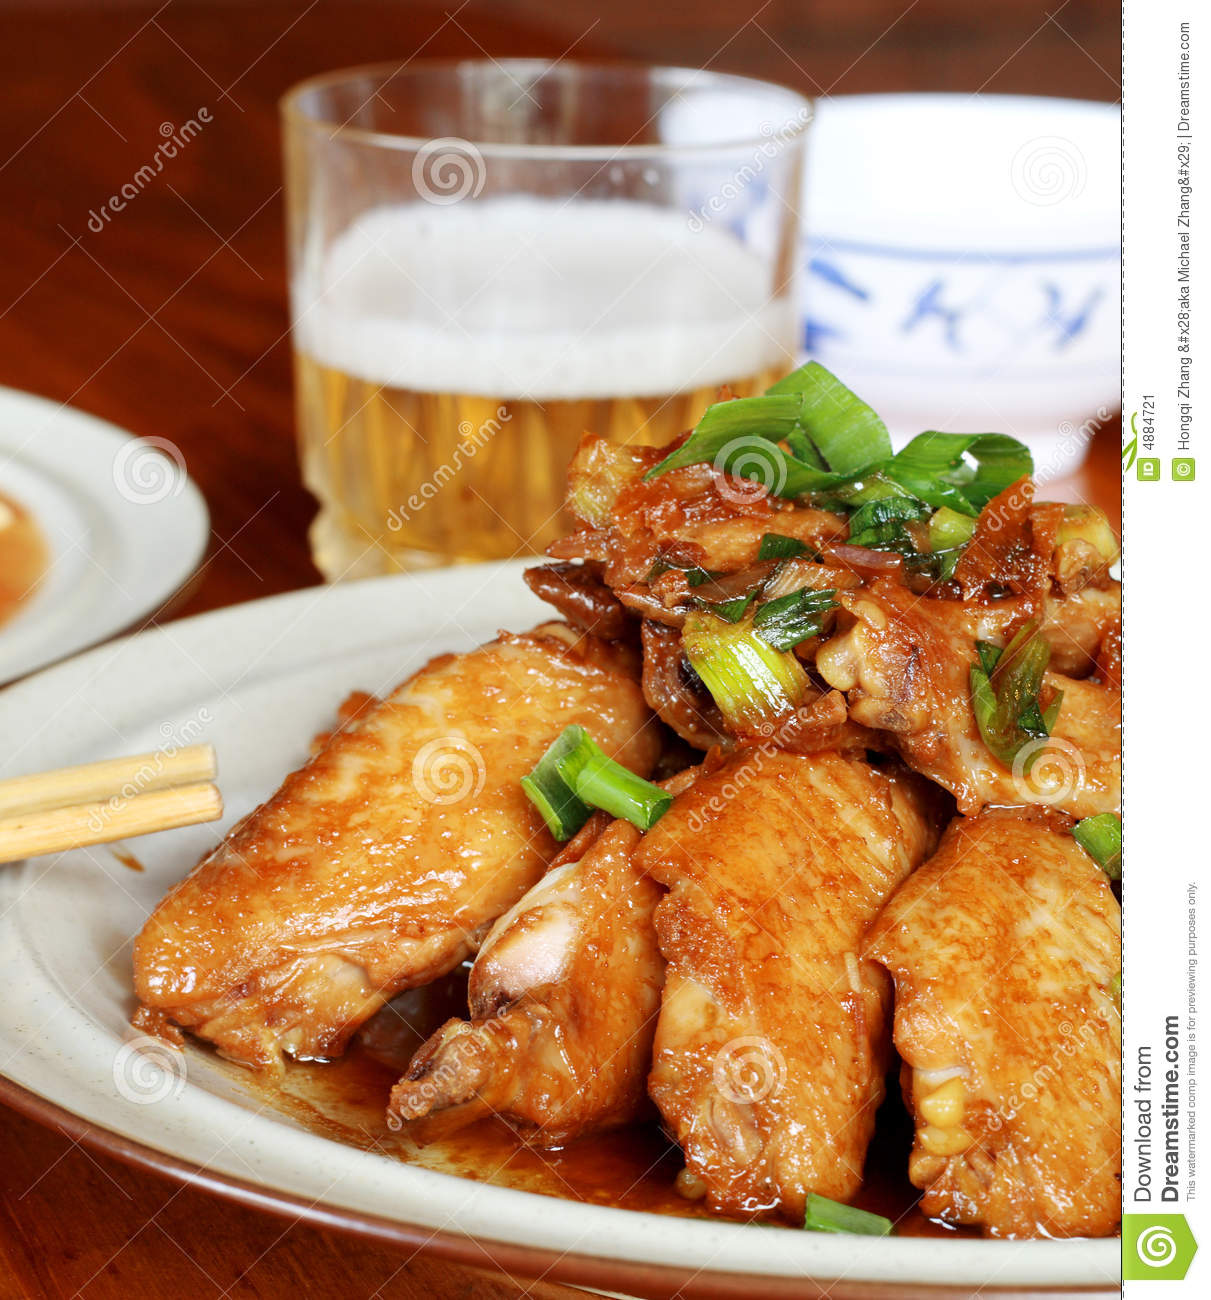 Chicken and beer - photo#9